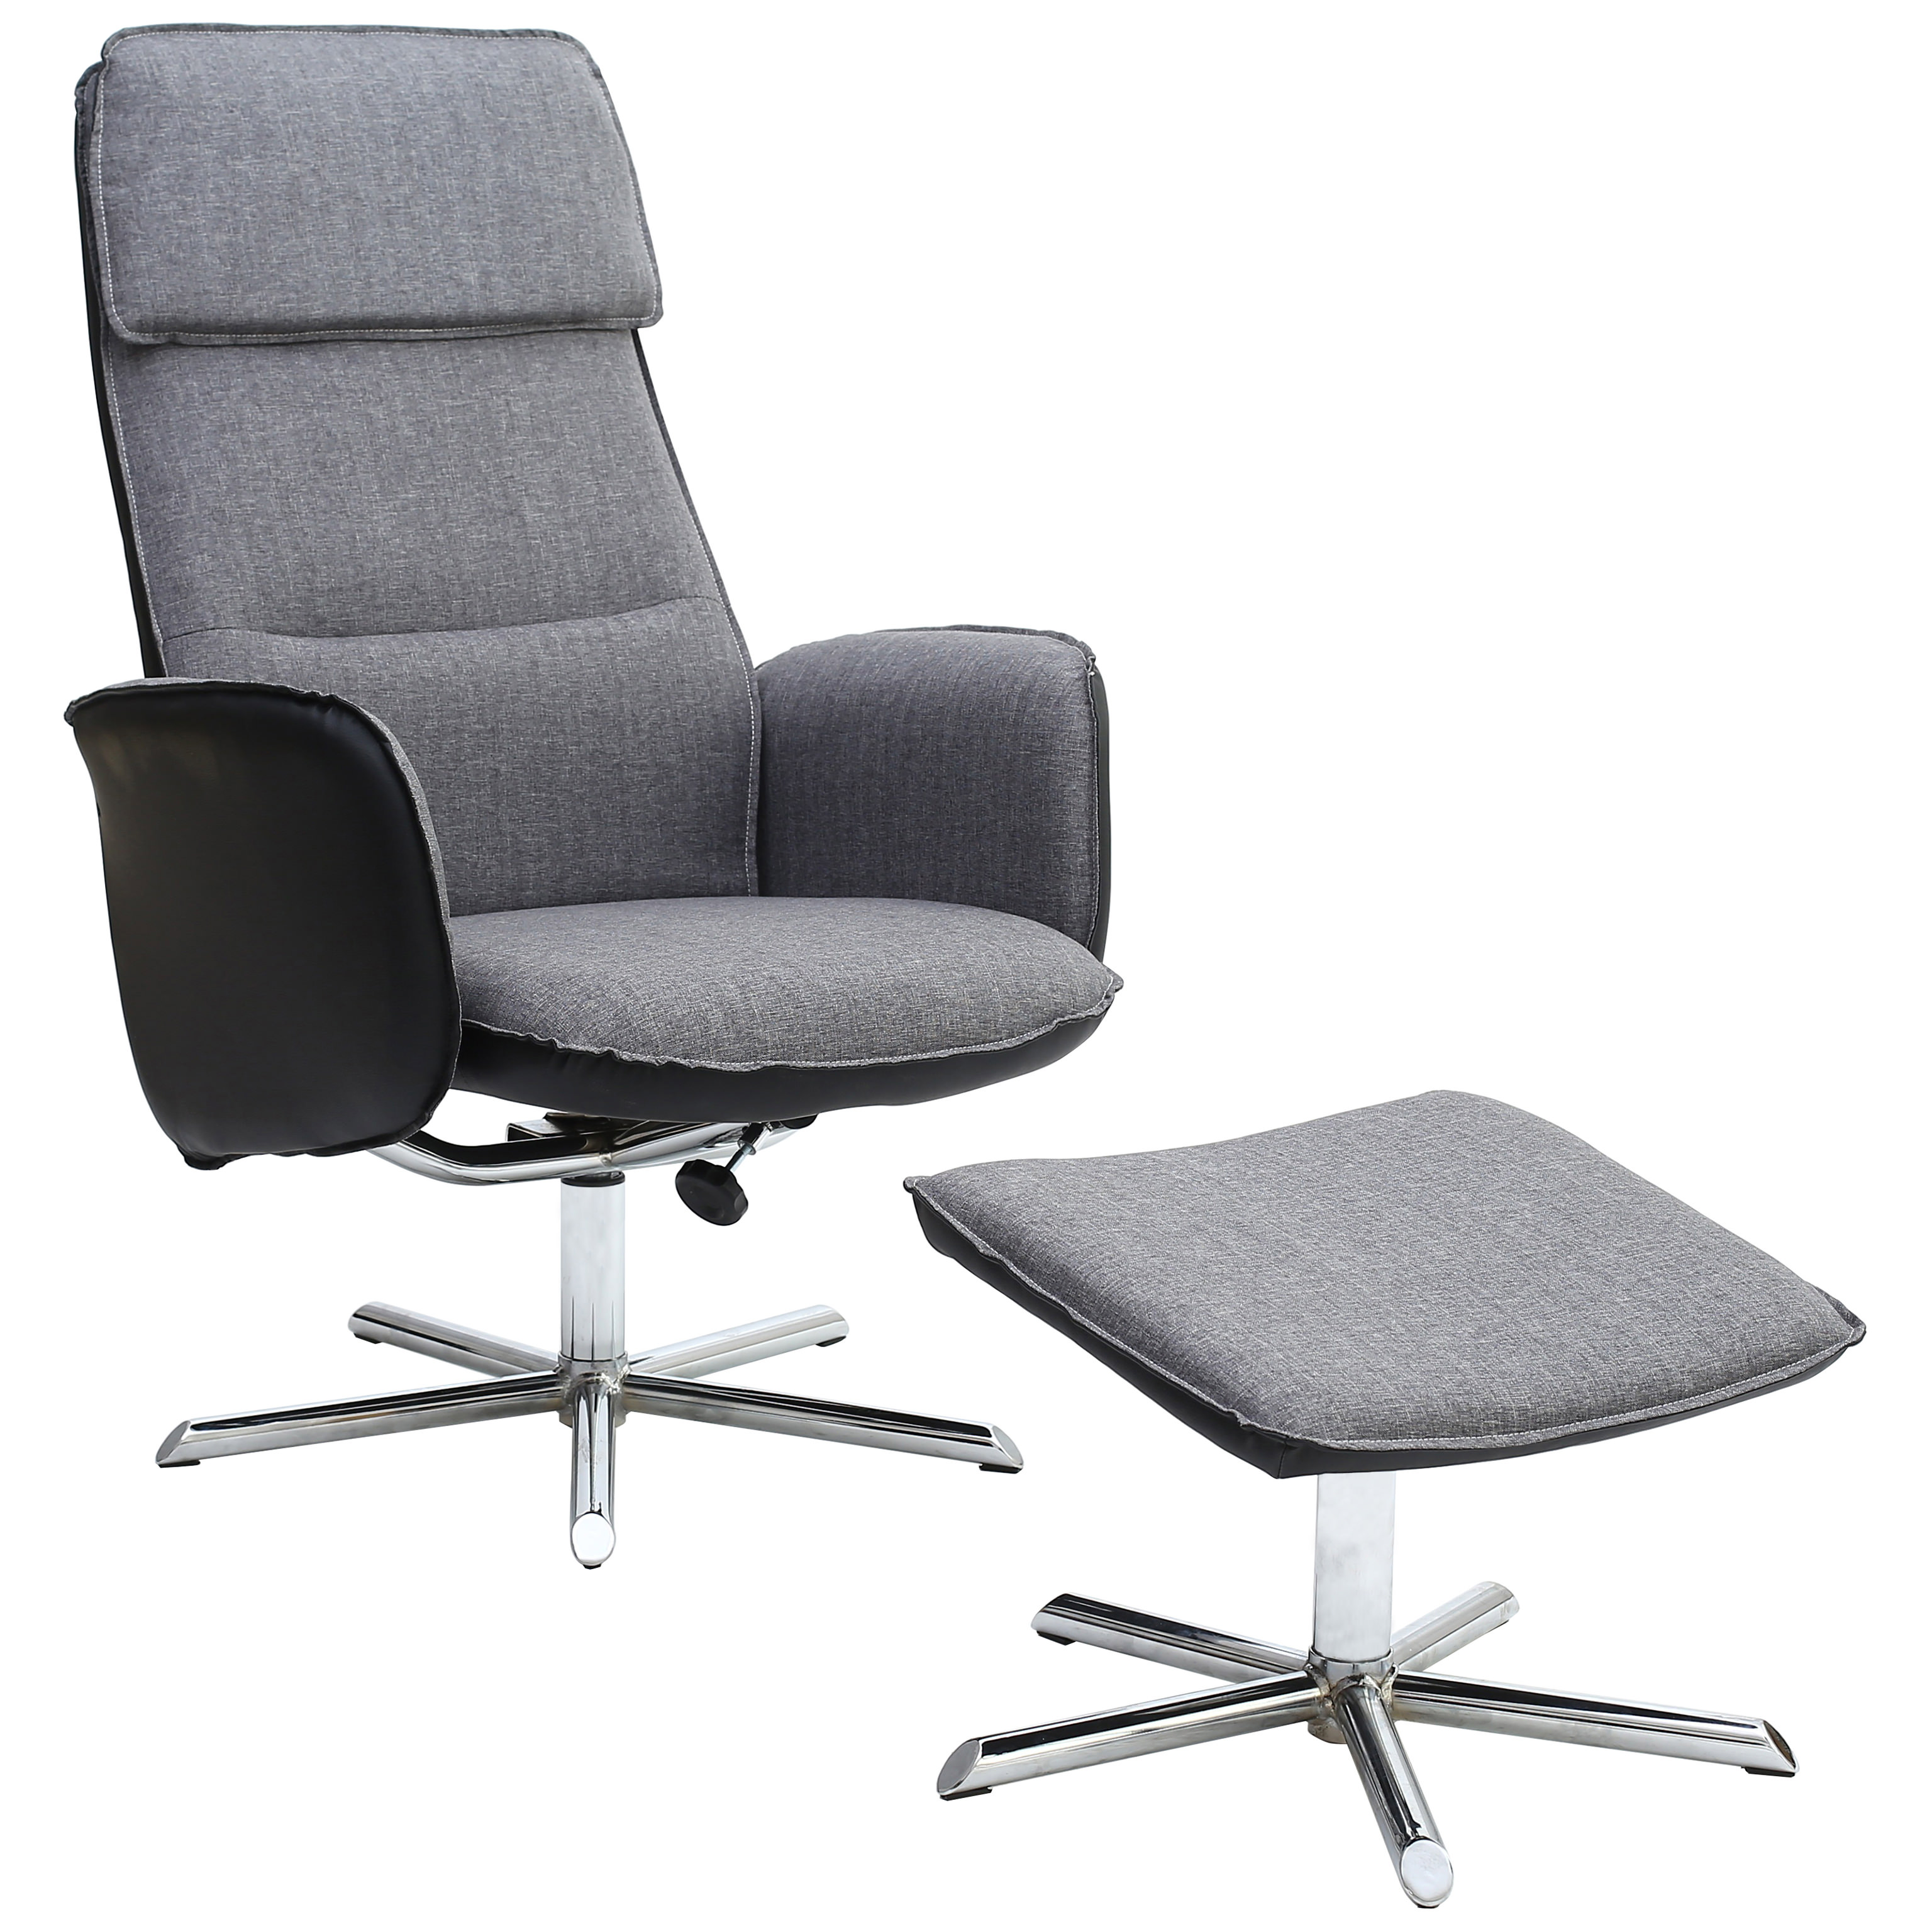 Fabric & Leather Recliner Reclining Chair Armchair Seat